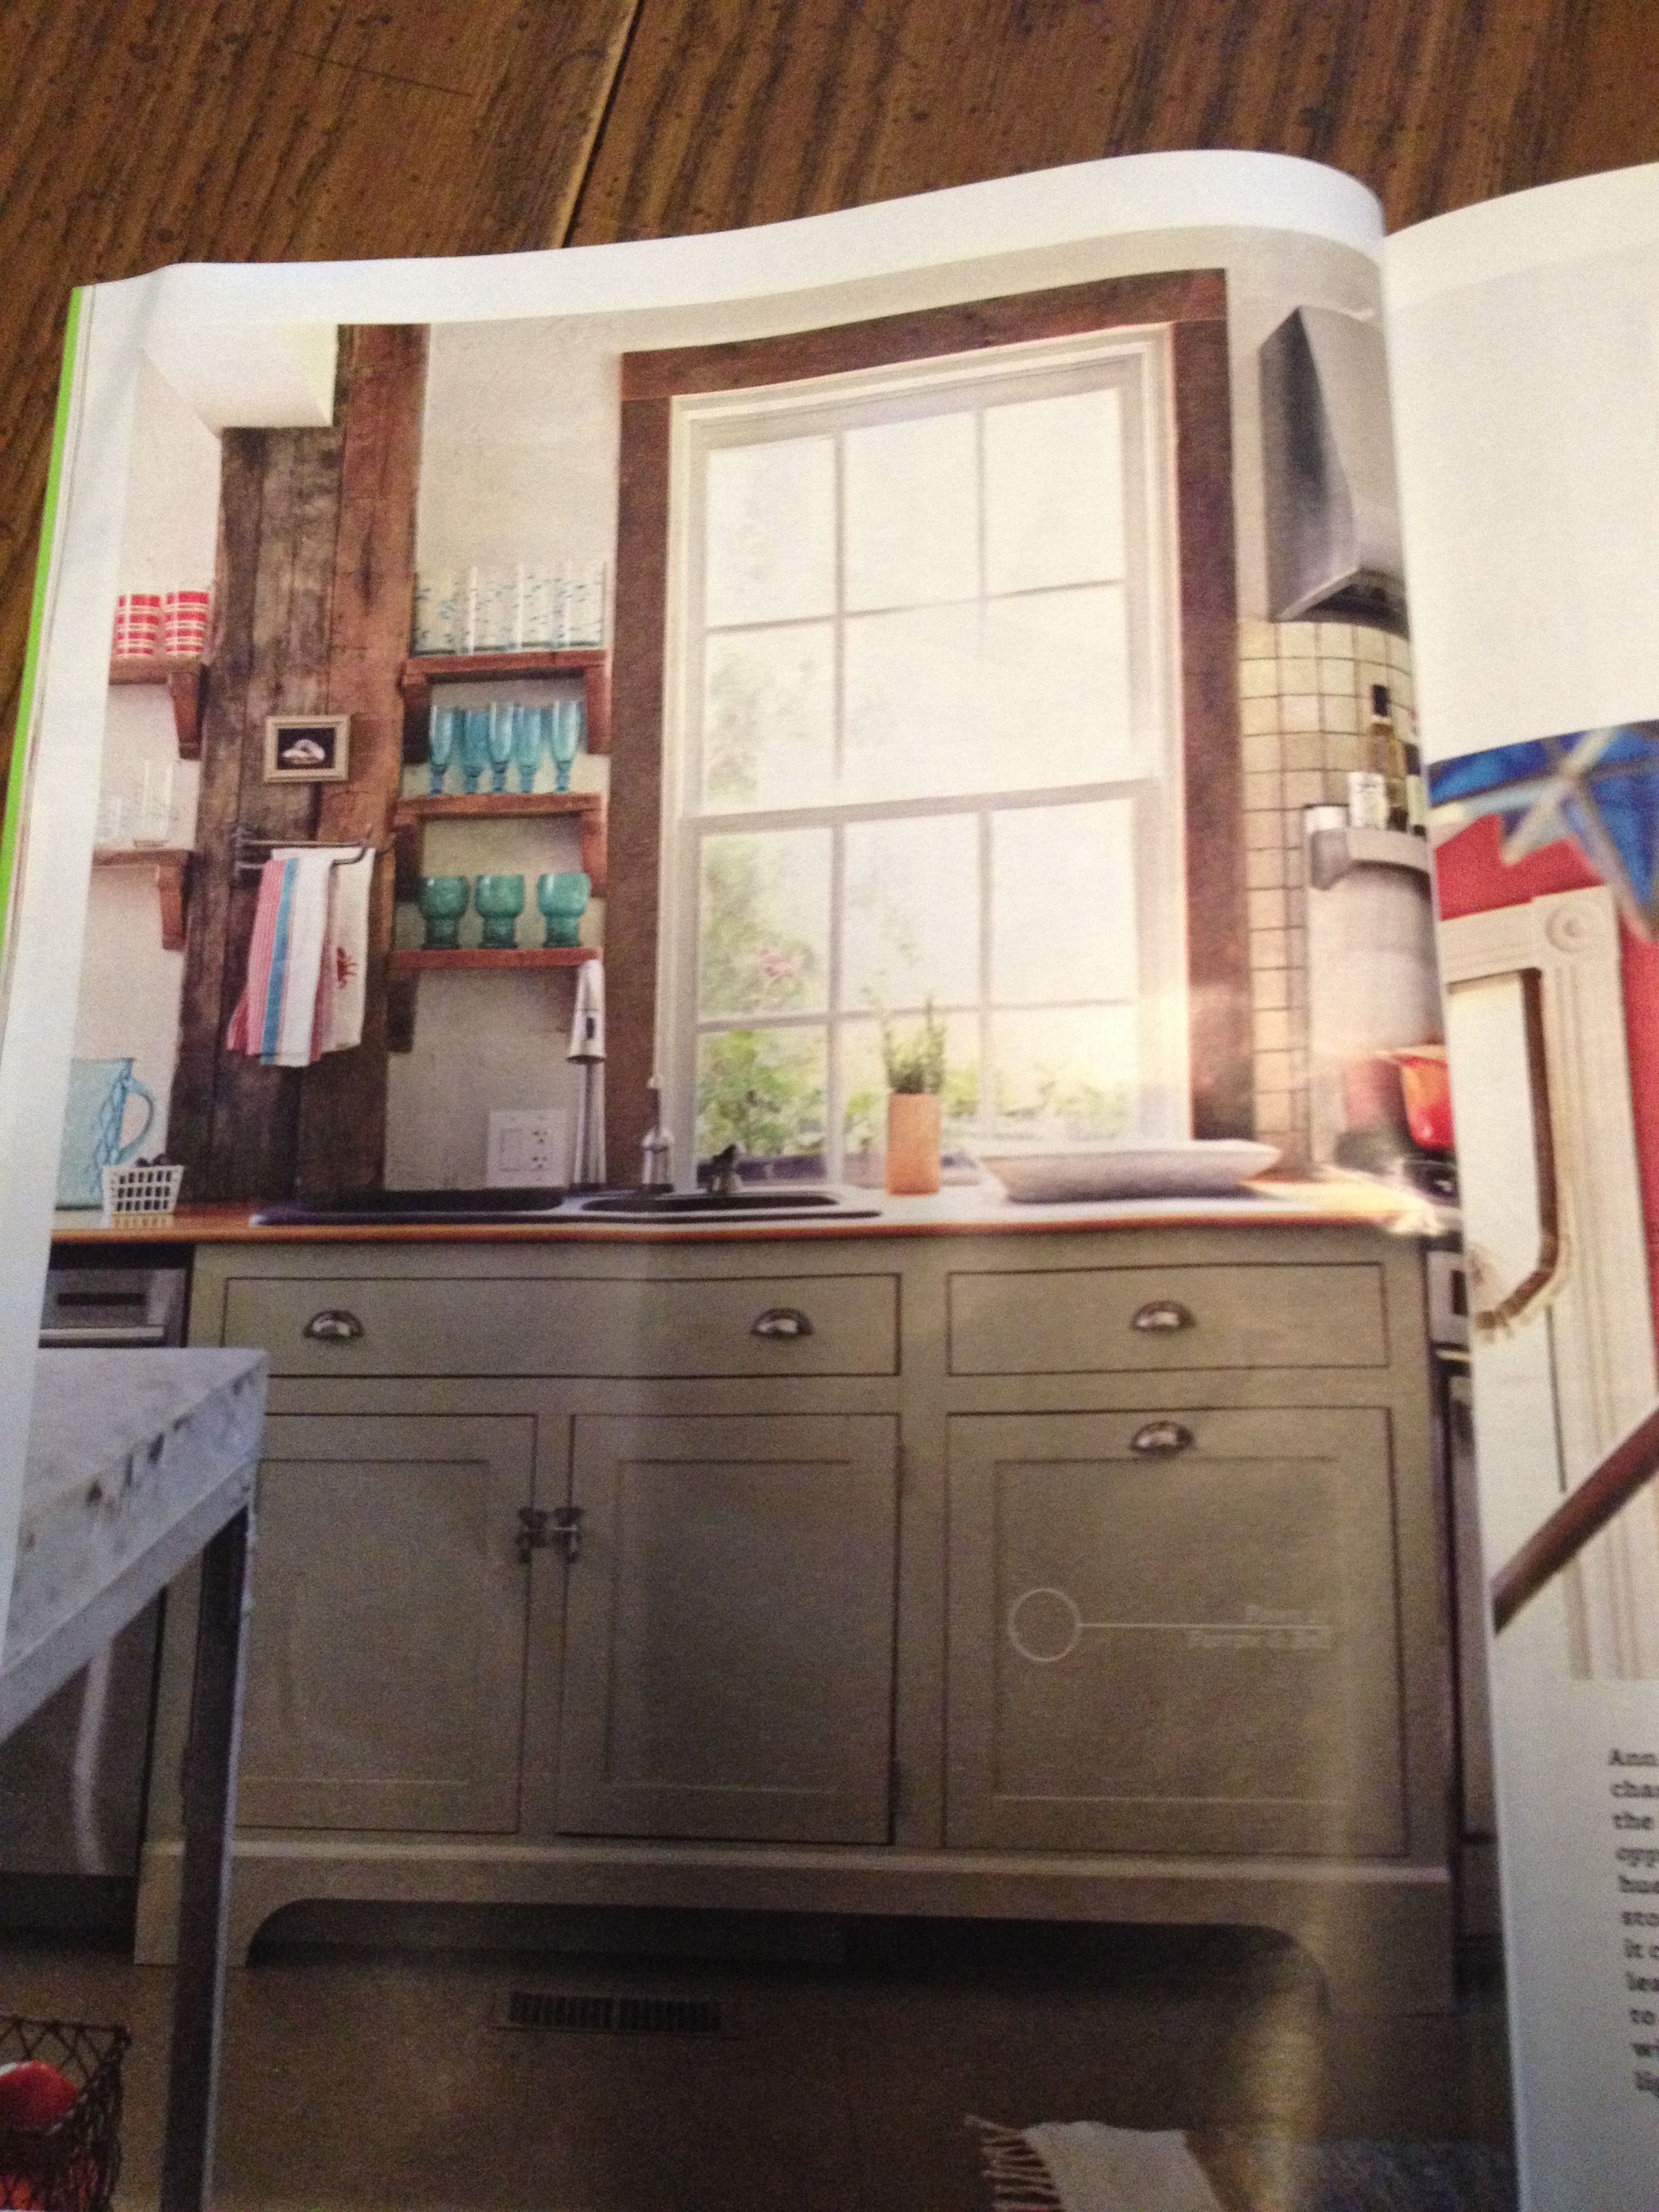 Fawn 10 By Farrow Ball Love The Cabinet Colors Cabinet Colors Farrow Ball Cabinet